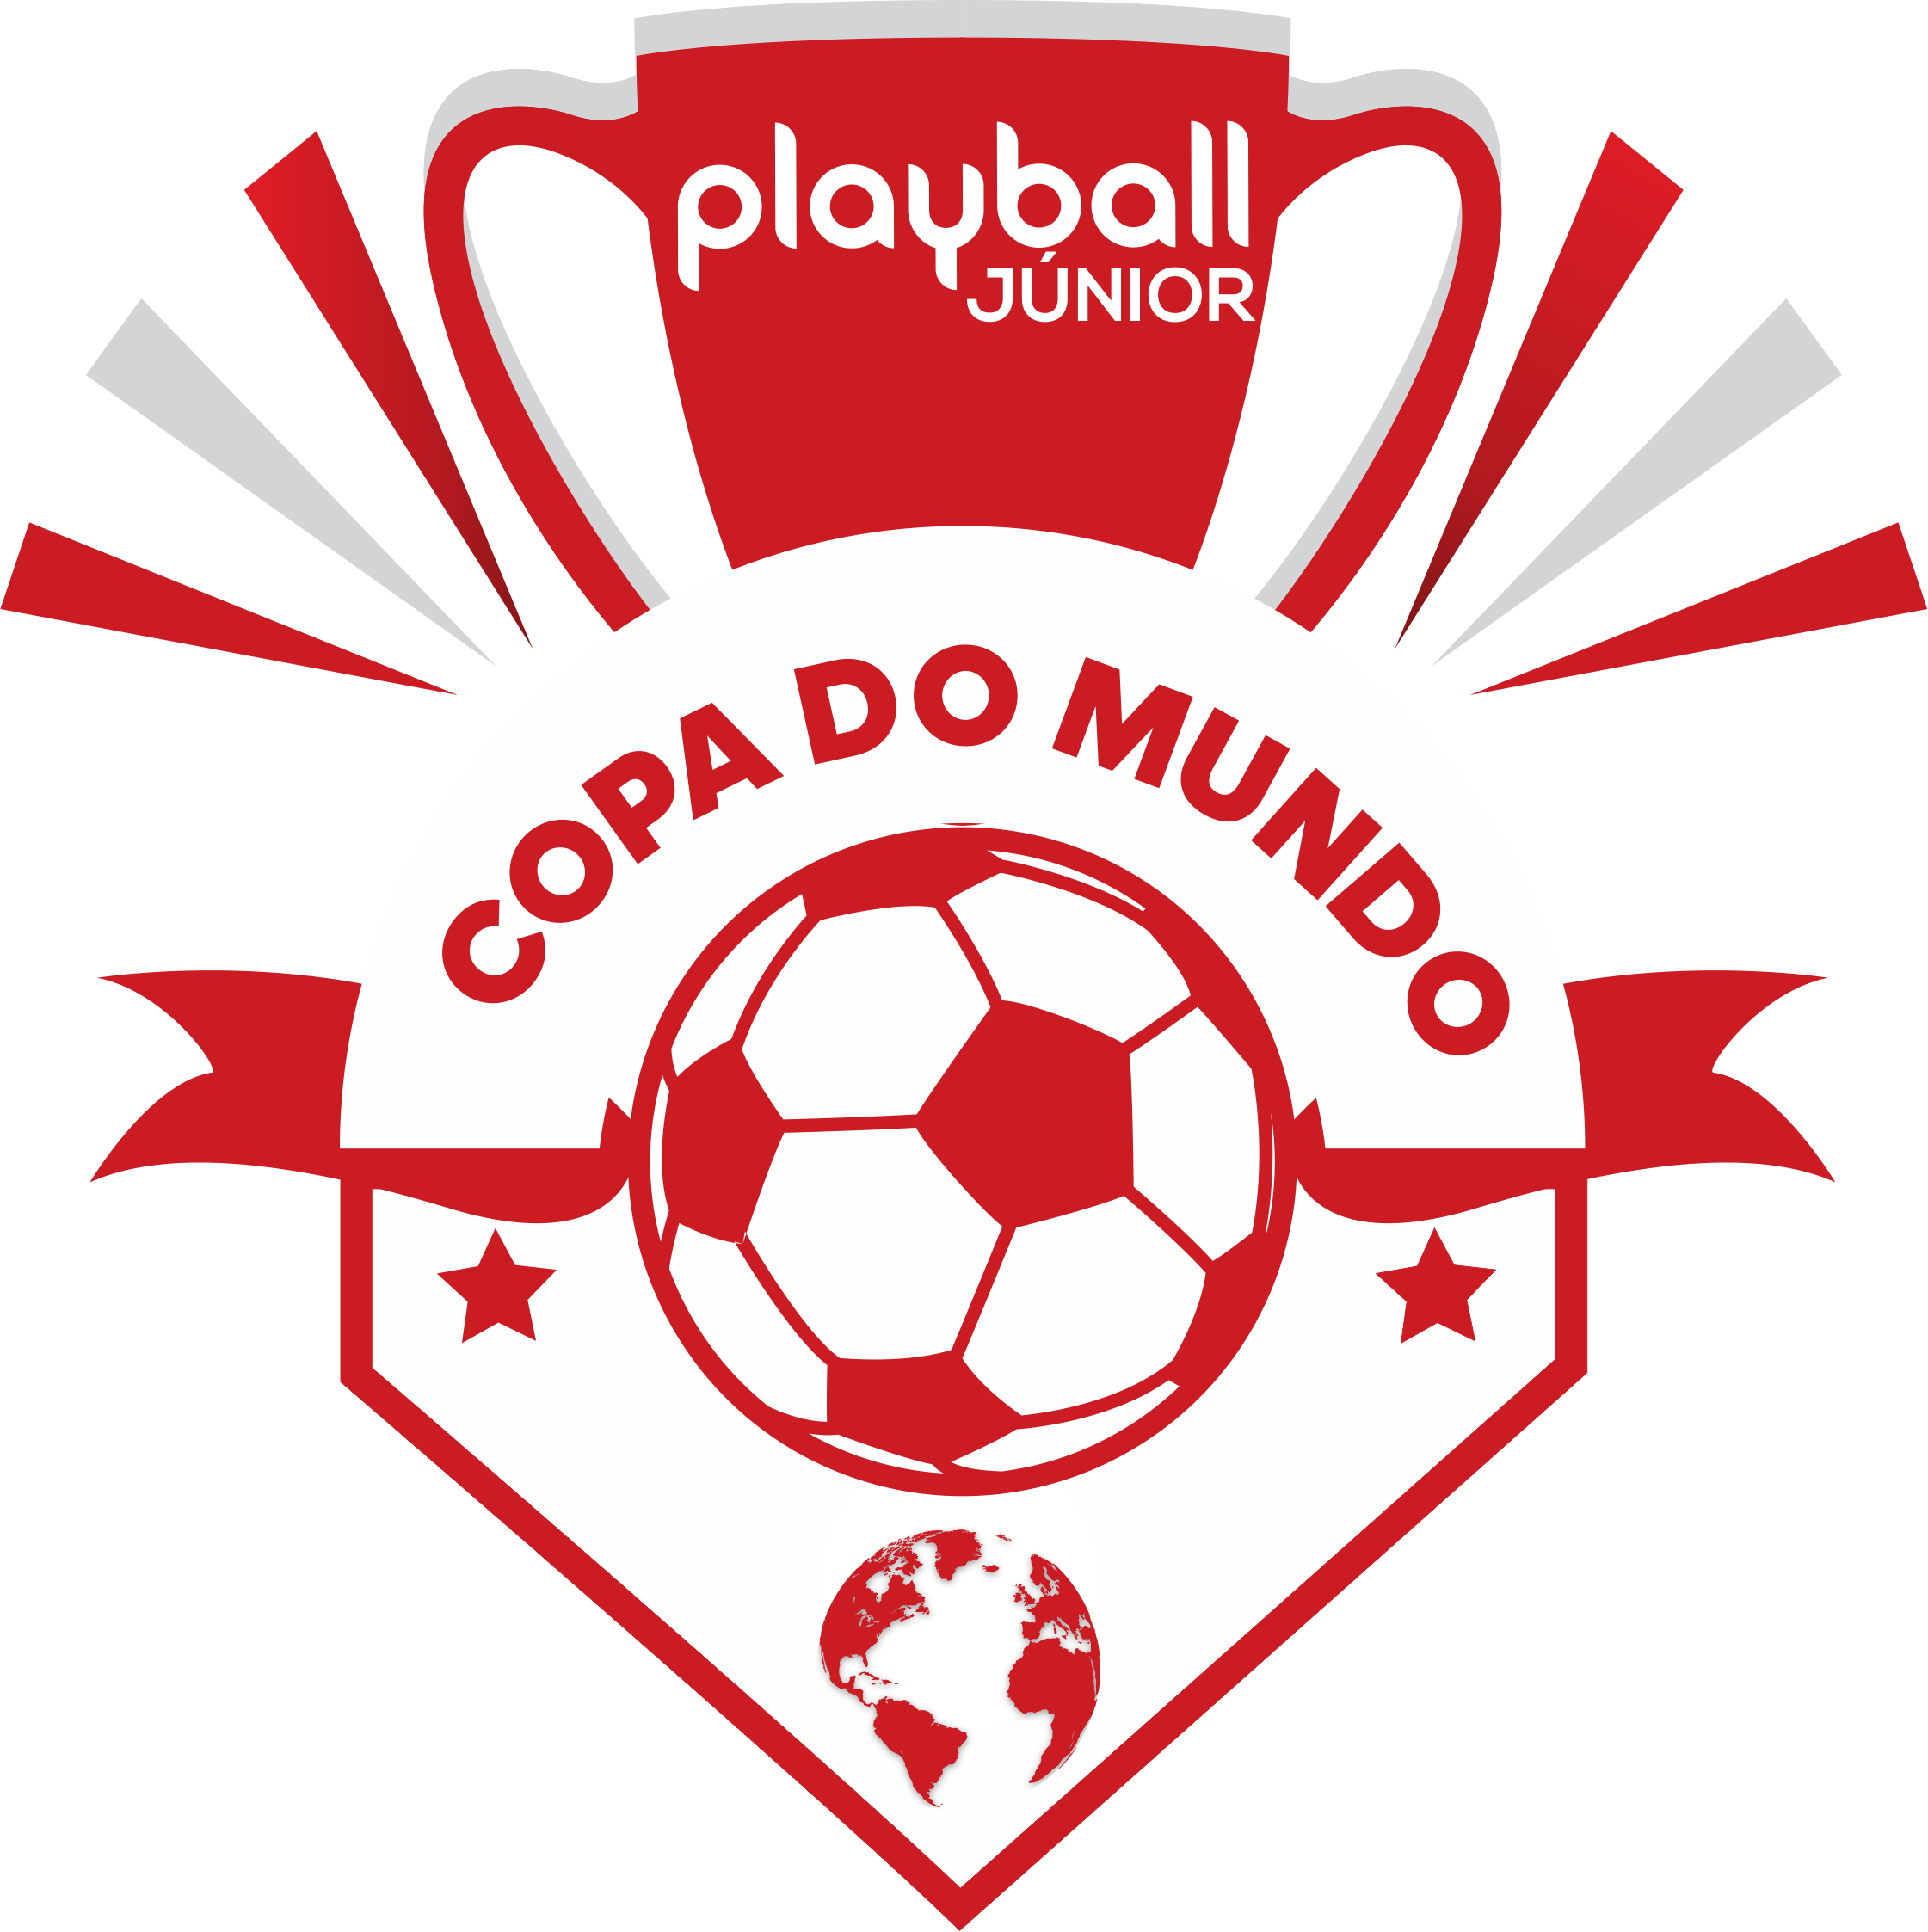 Copa do Mundo Playball Jr sub 13 Pompeia e Ceasa